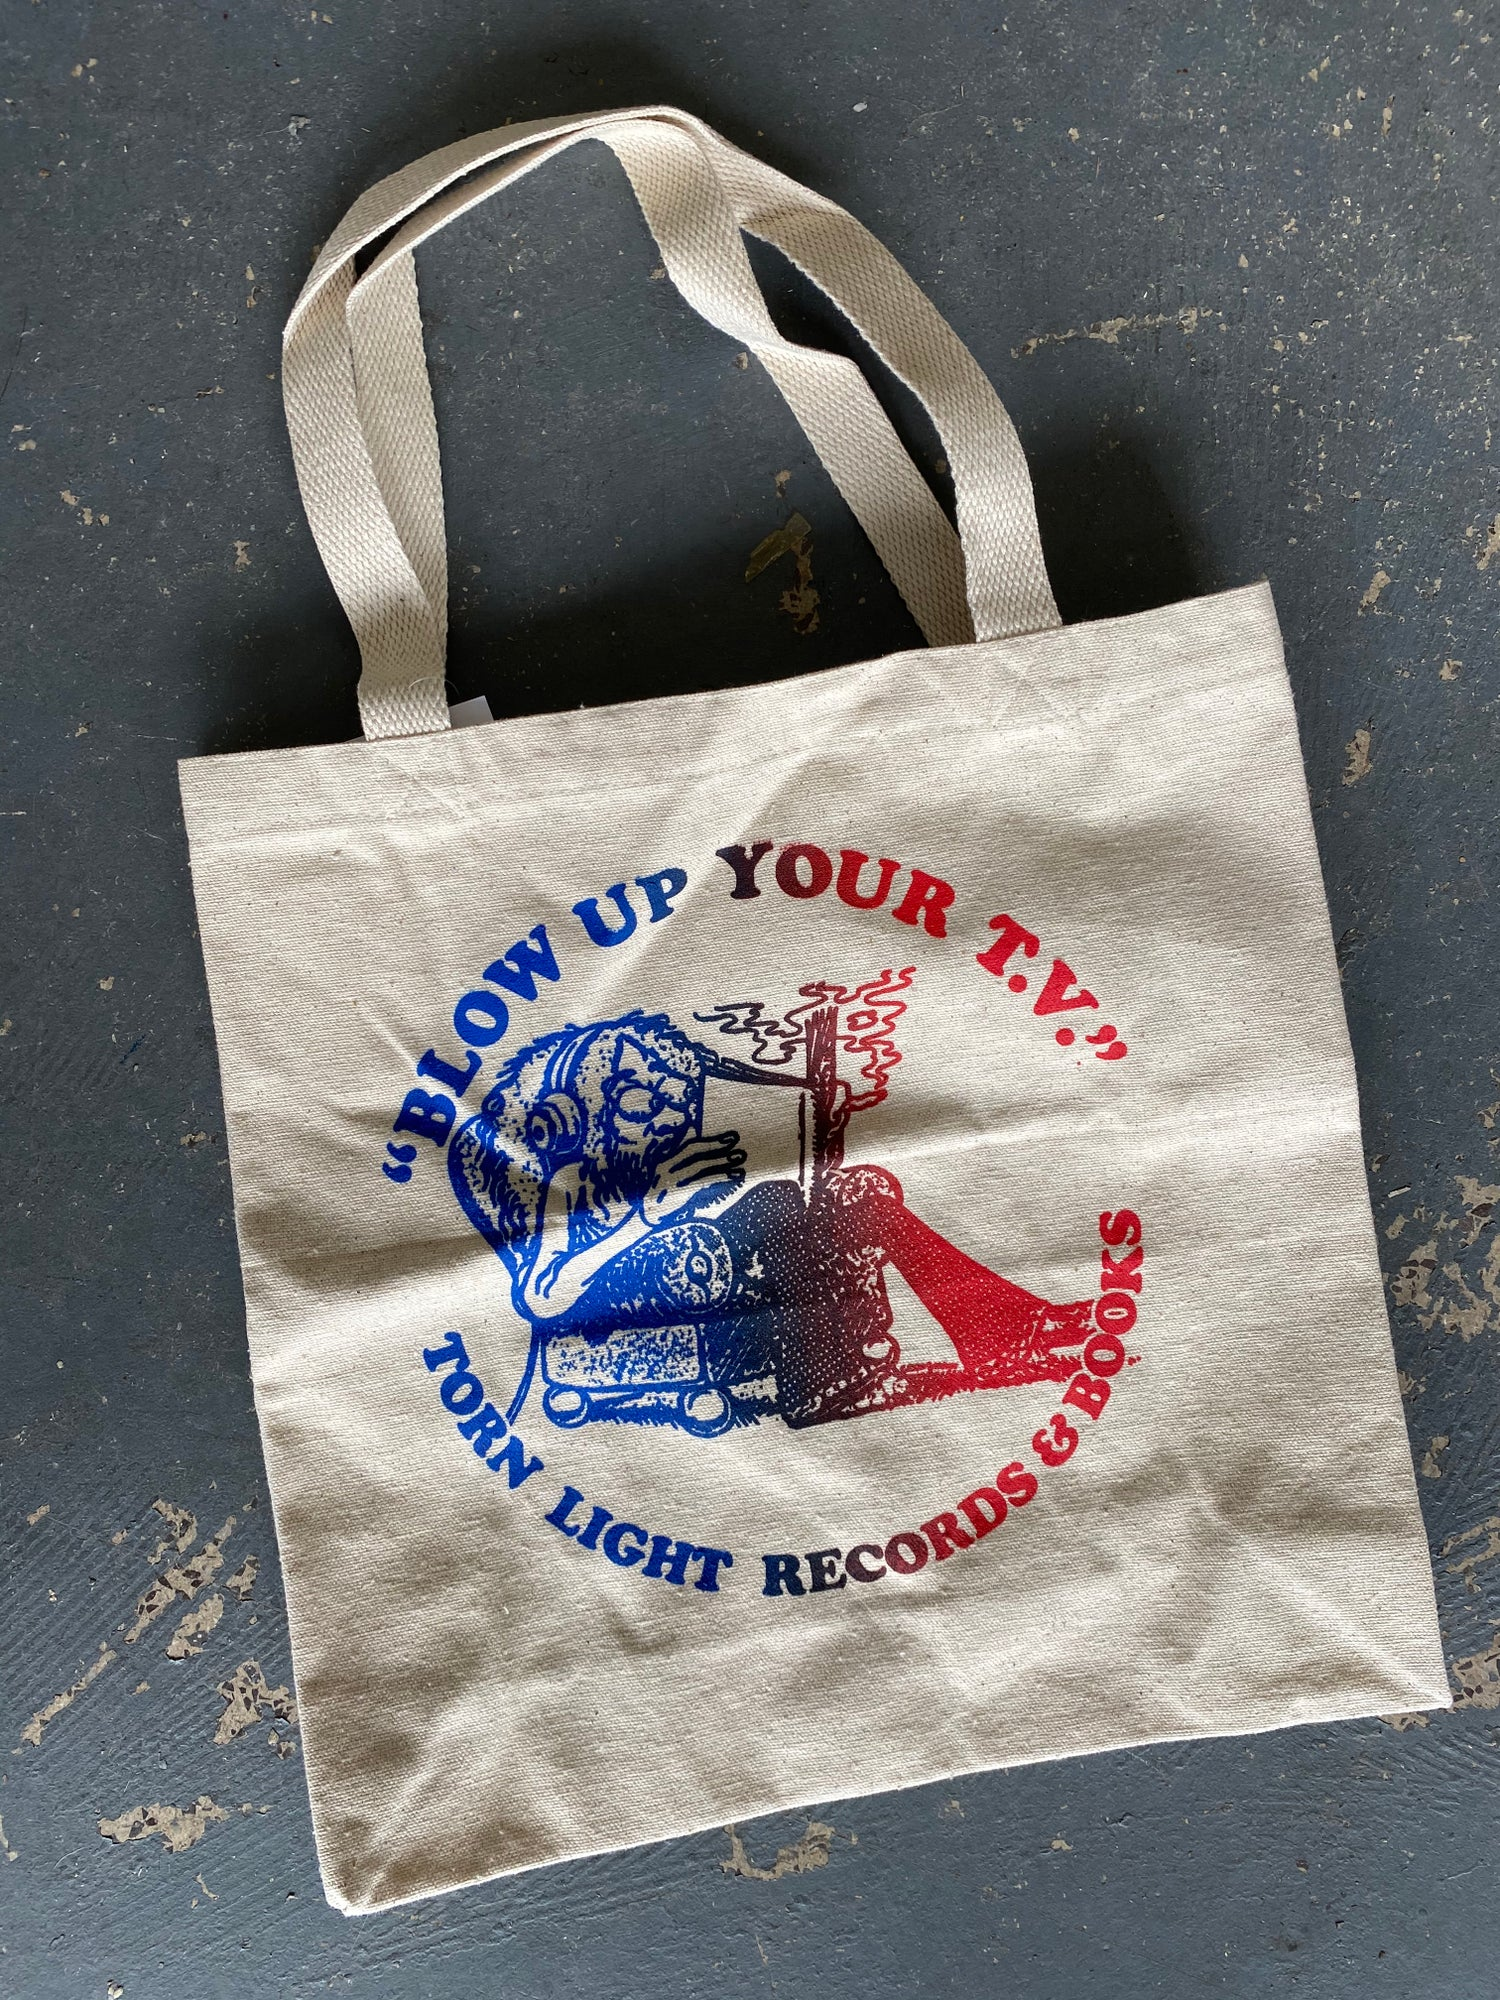 Blow Up Your T.V. Tote